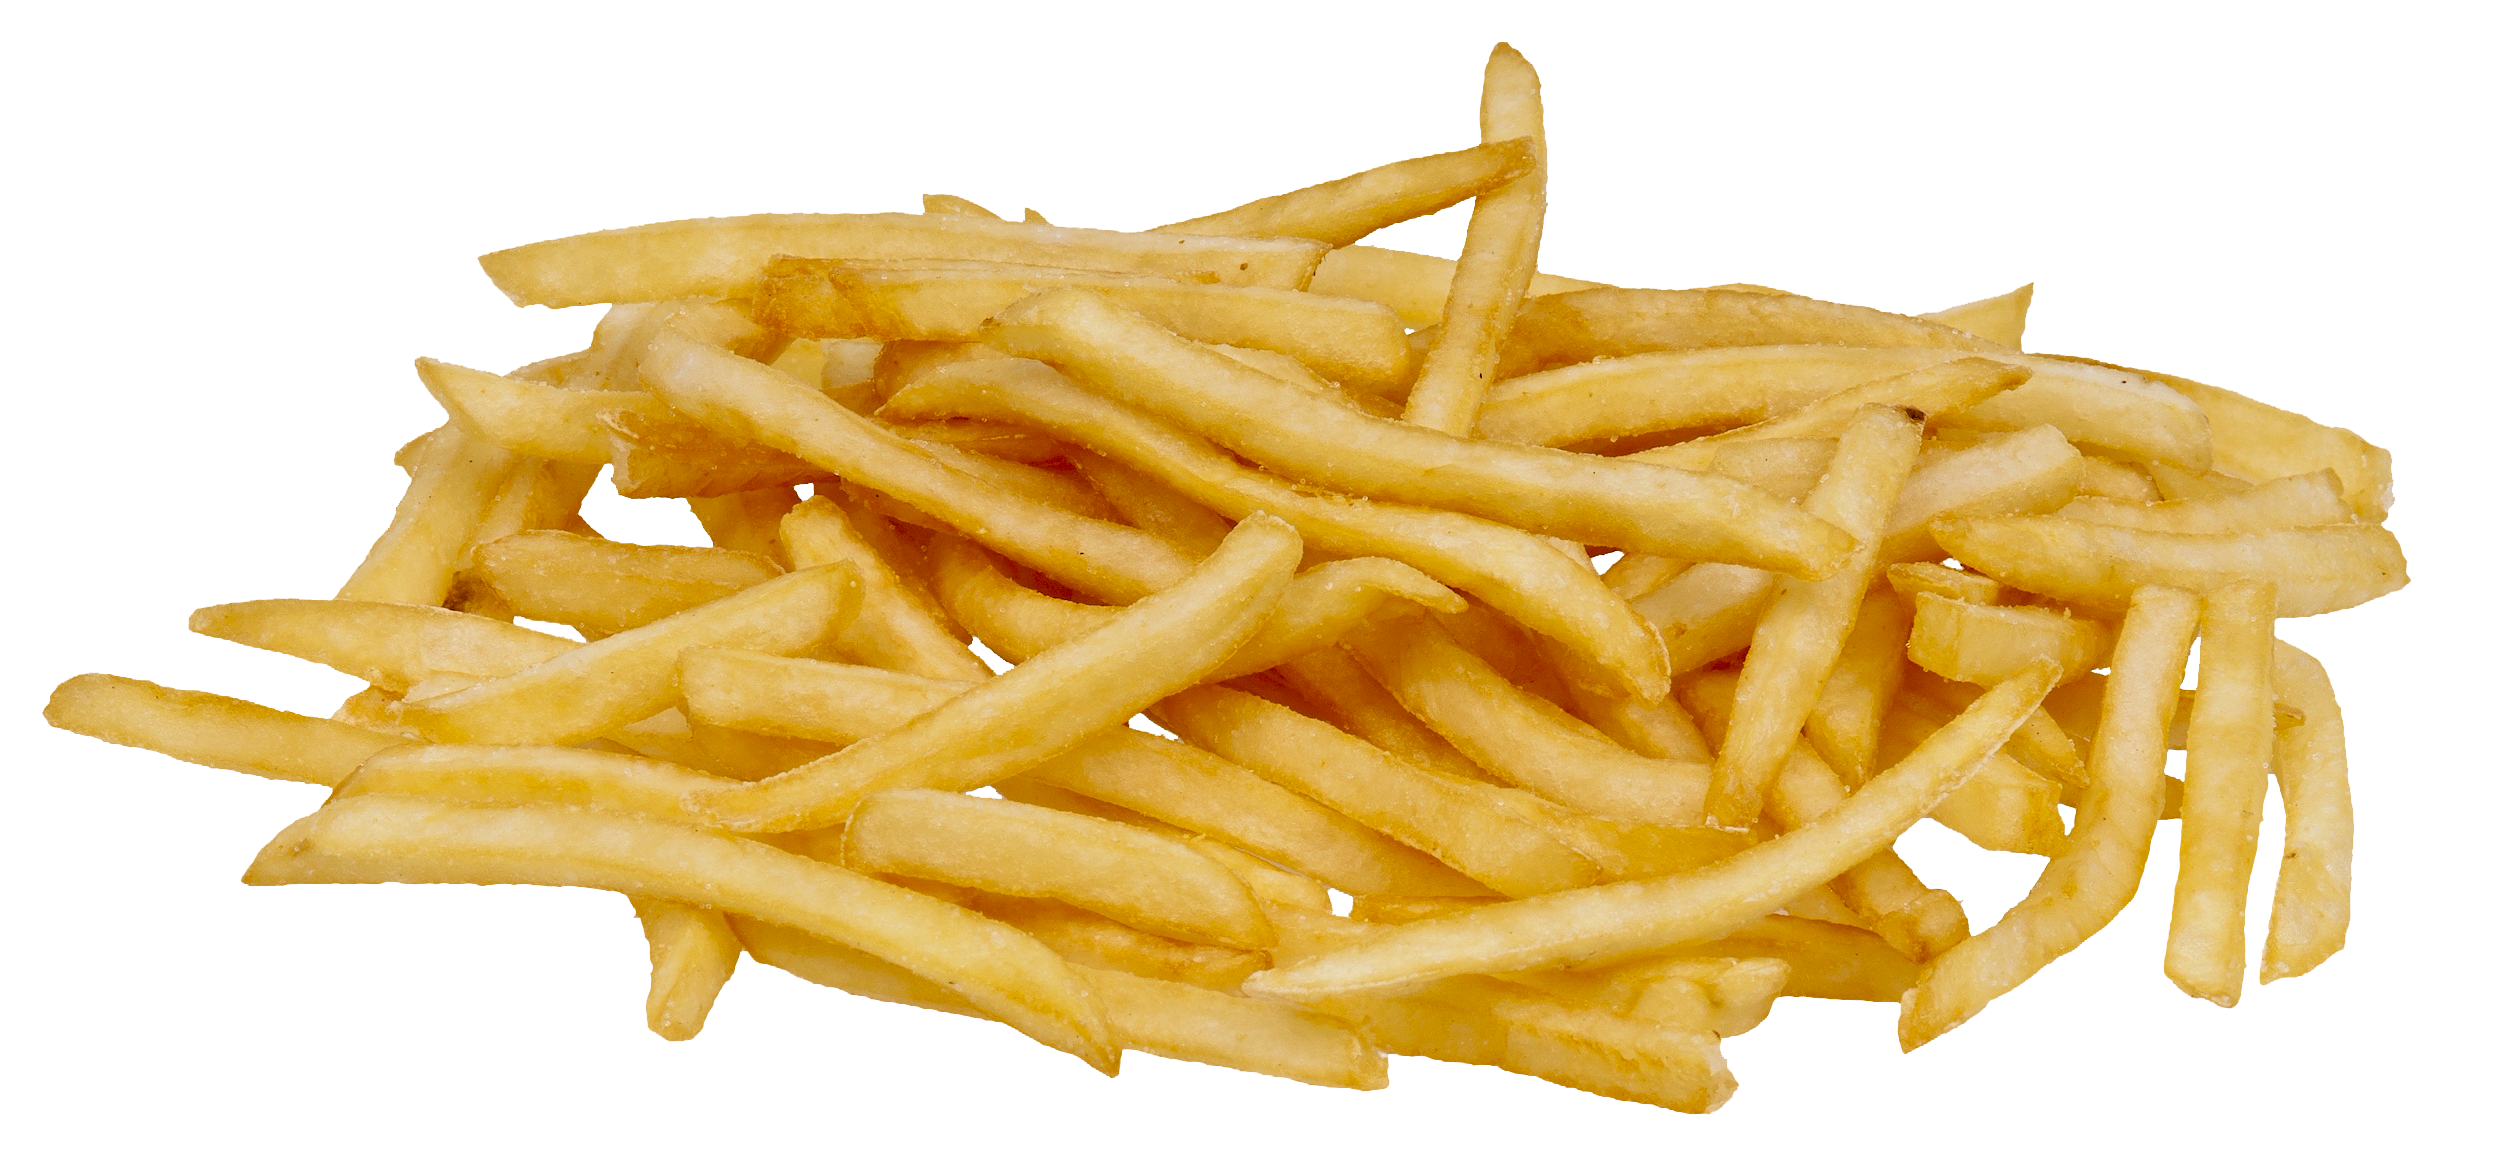 vector freeuse download Png image purepng free. Fries transparent